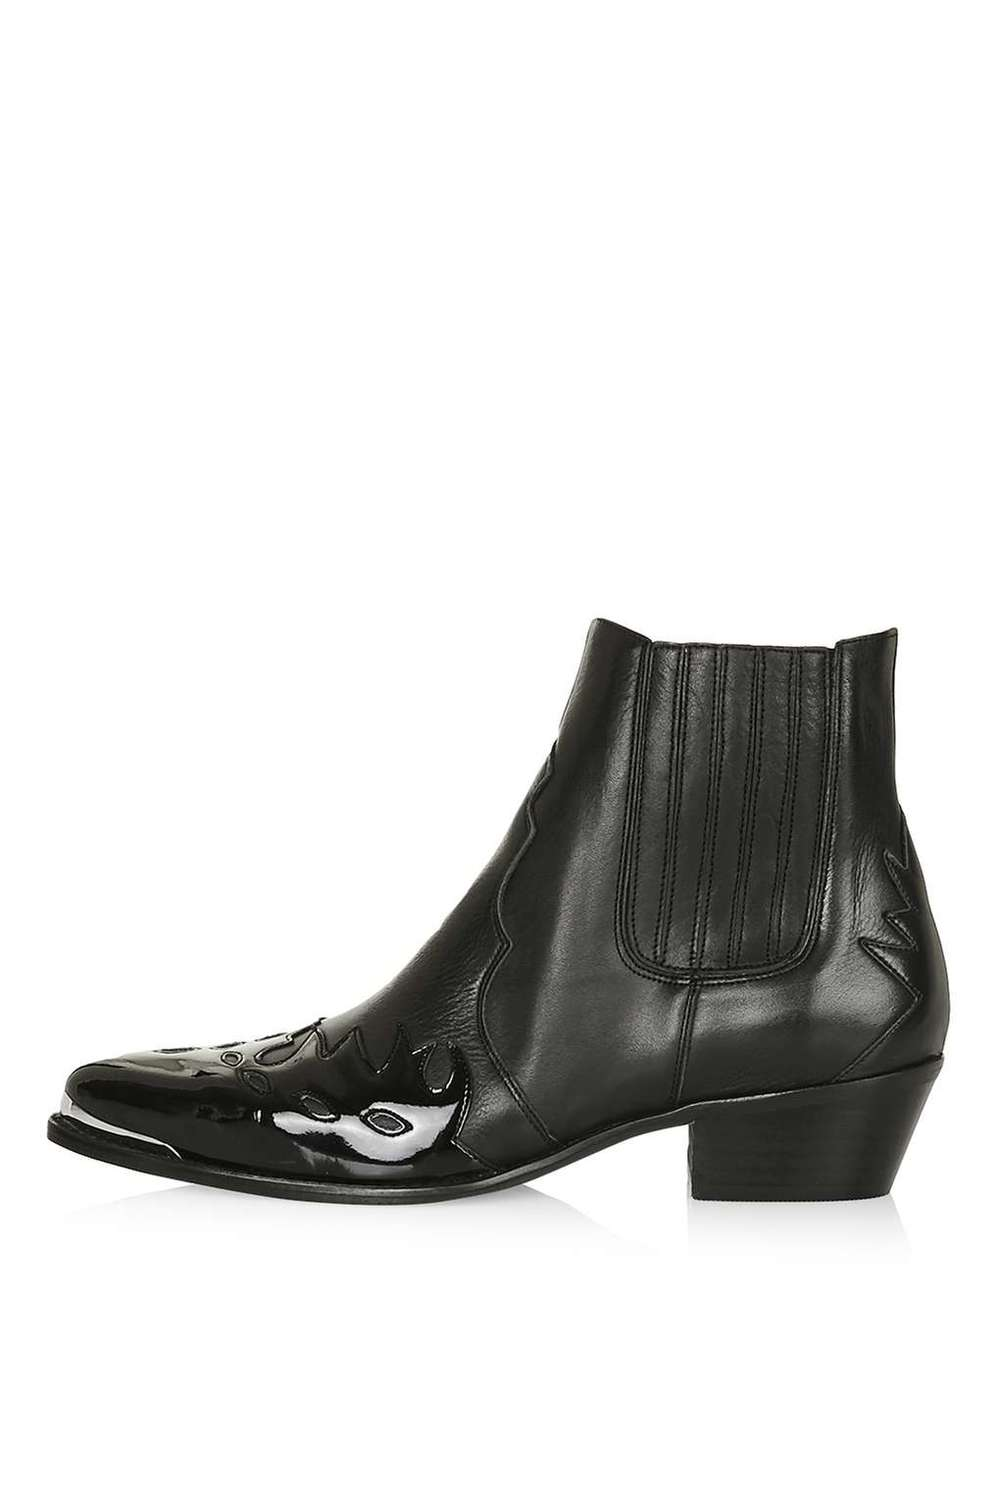 ARSON Western Ankle Boots topshop.jpg